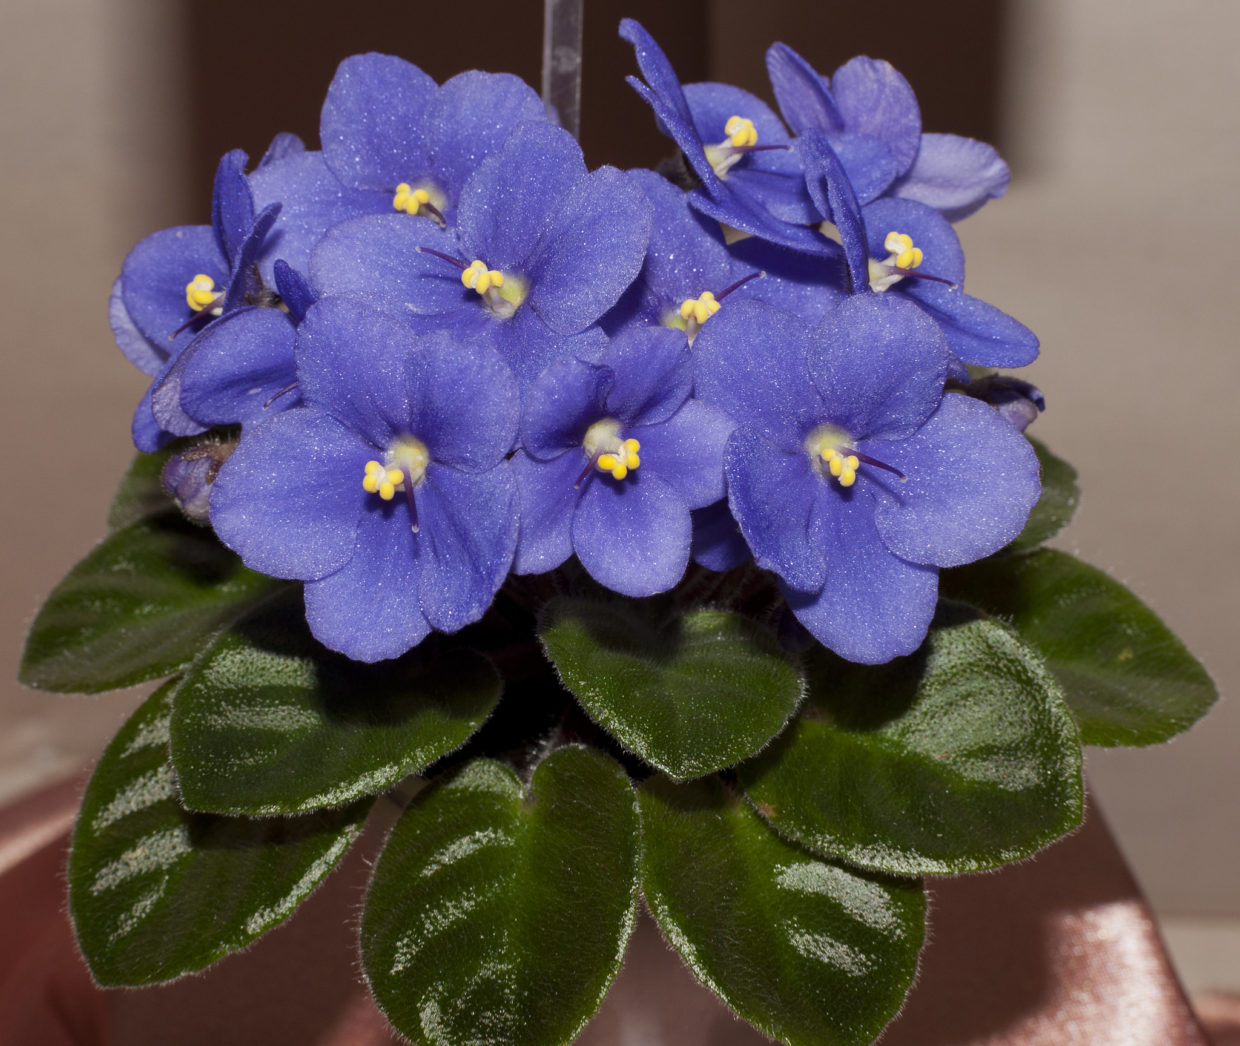 Give charming winter-blooming plants as holiday gifts